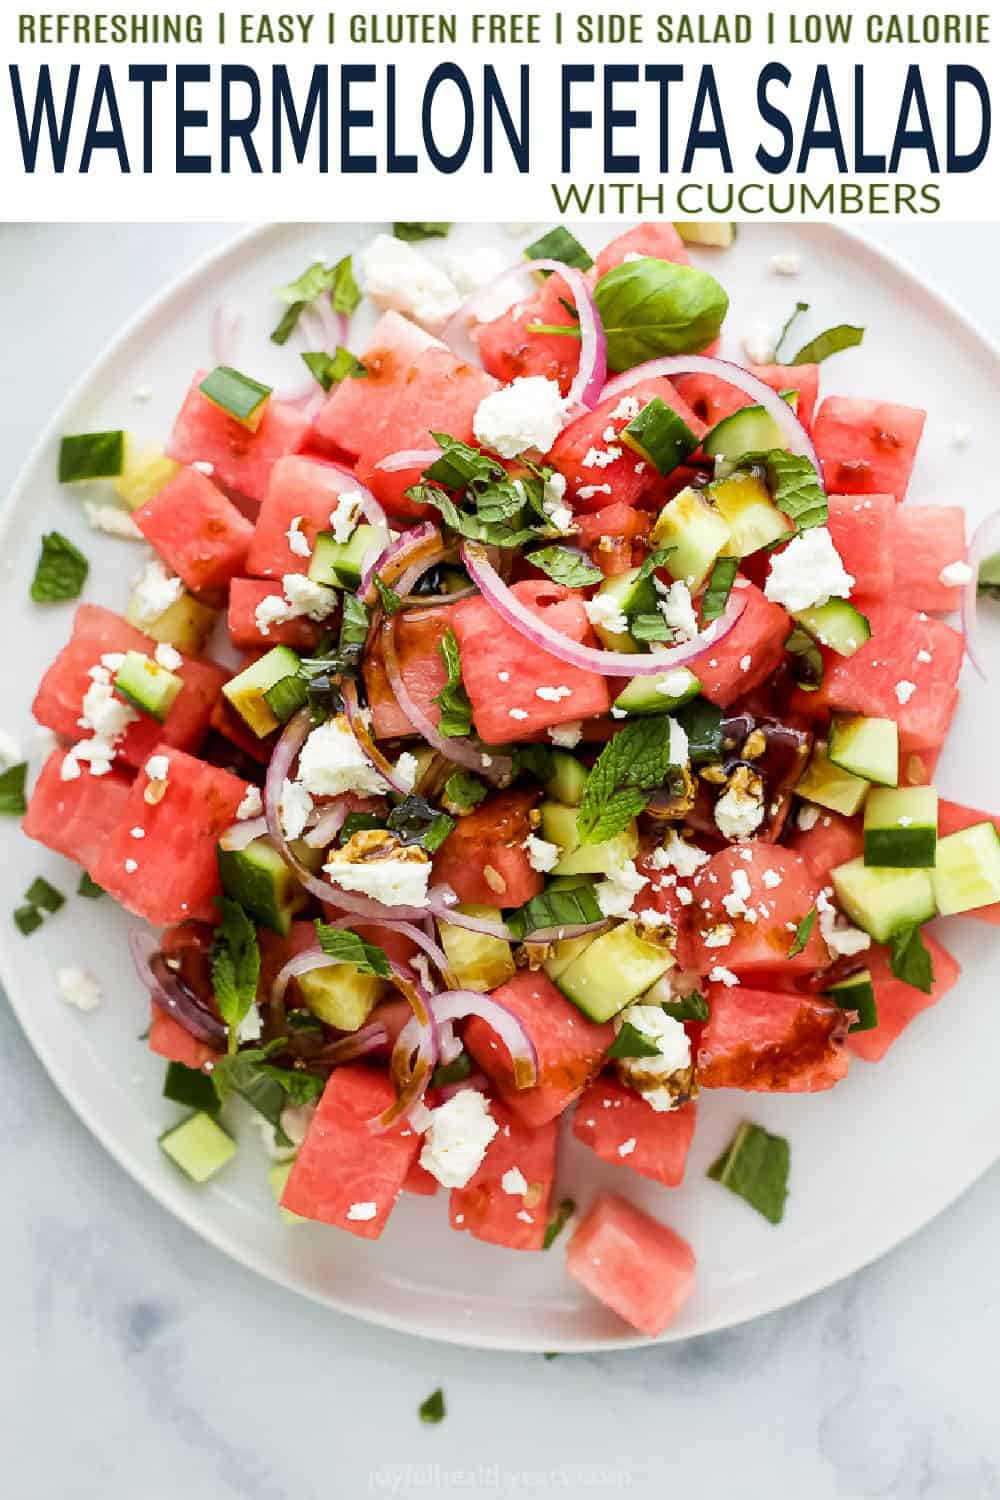 pinterest image for Refreshing Watermelon Feta Salad with Cucumber